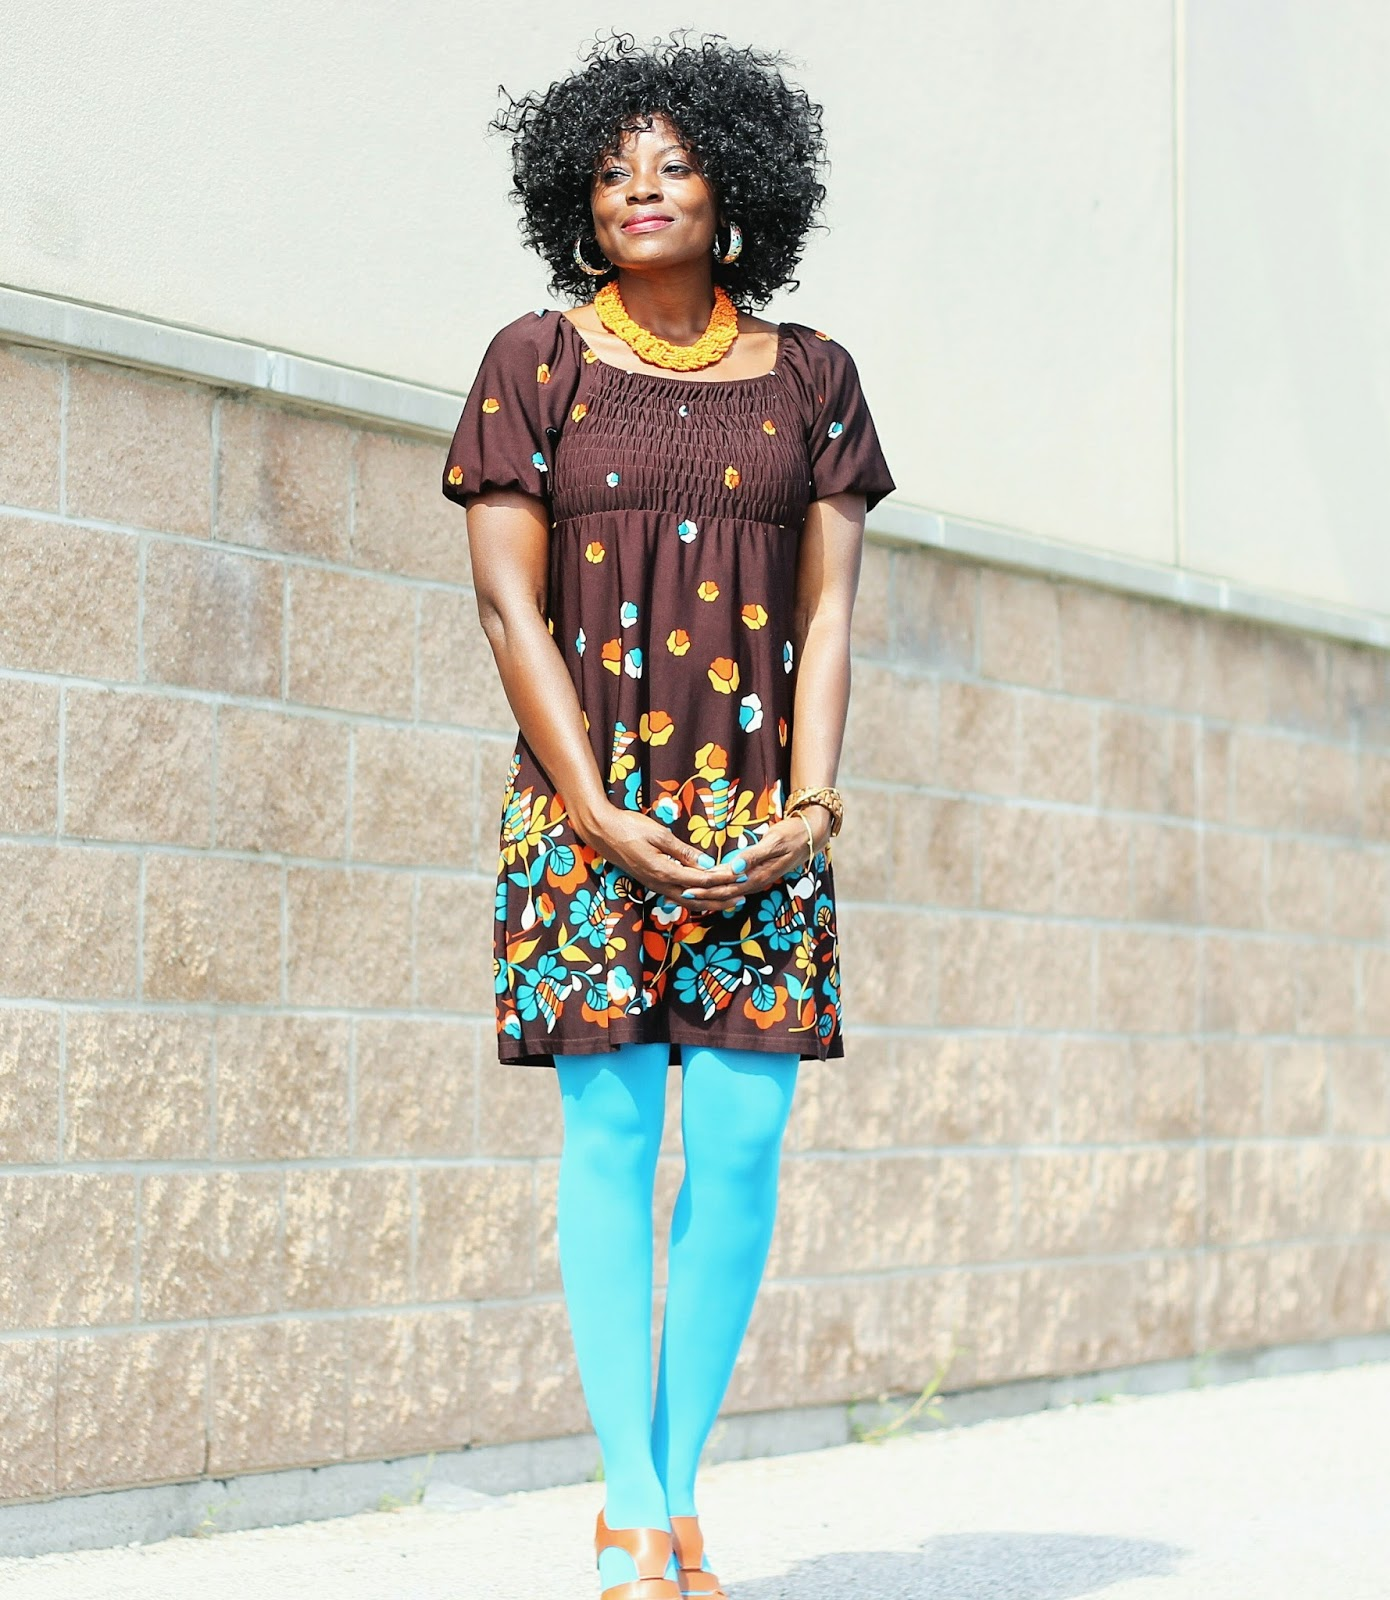 Boho x Retro style outfit mix with a gypsy dress